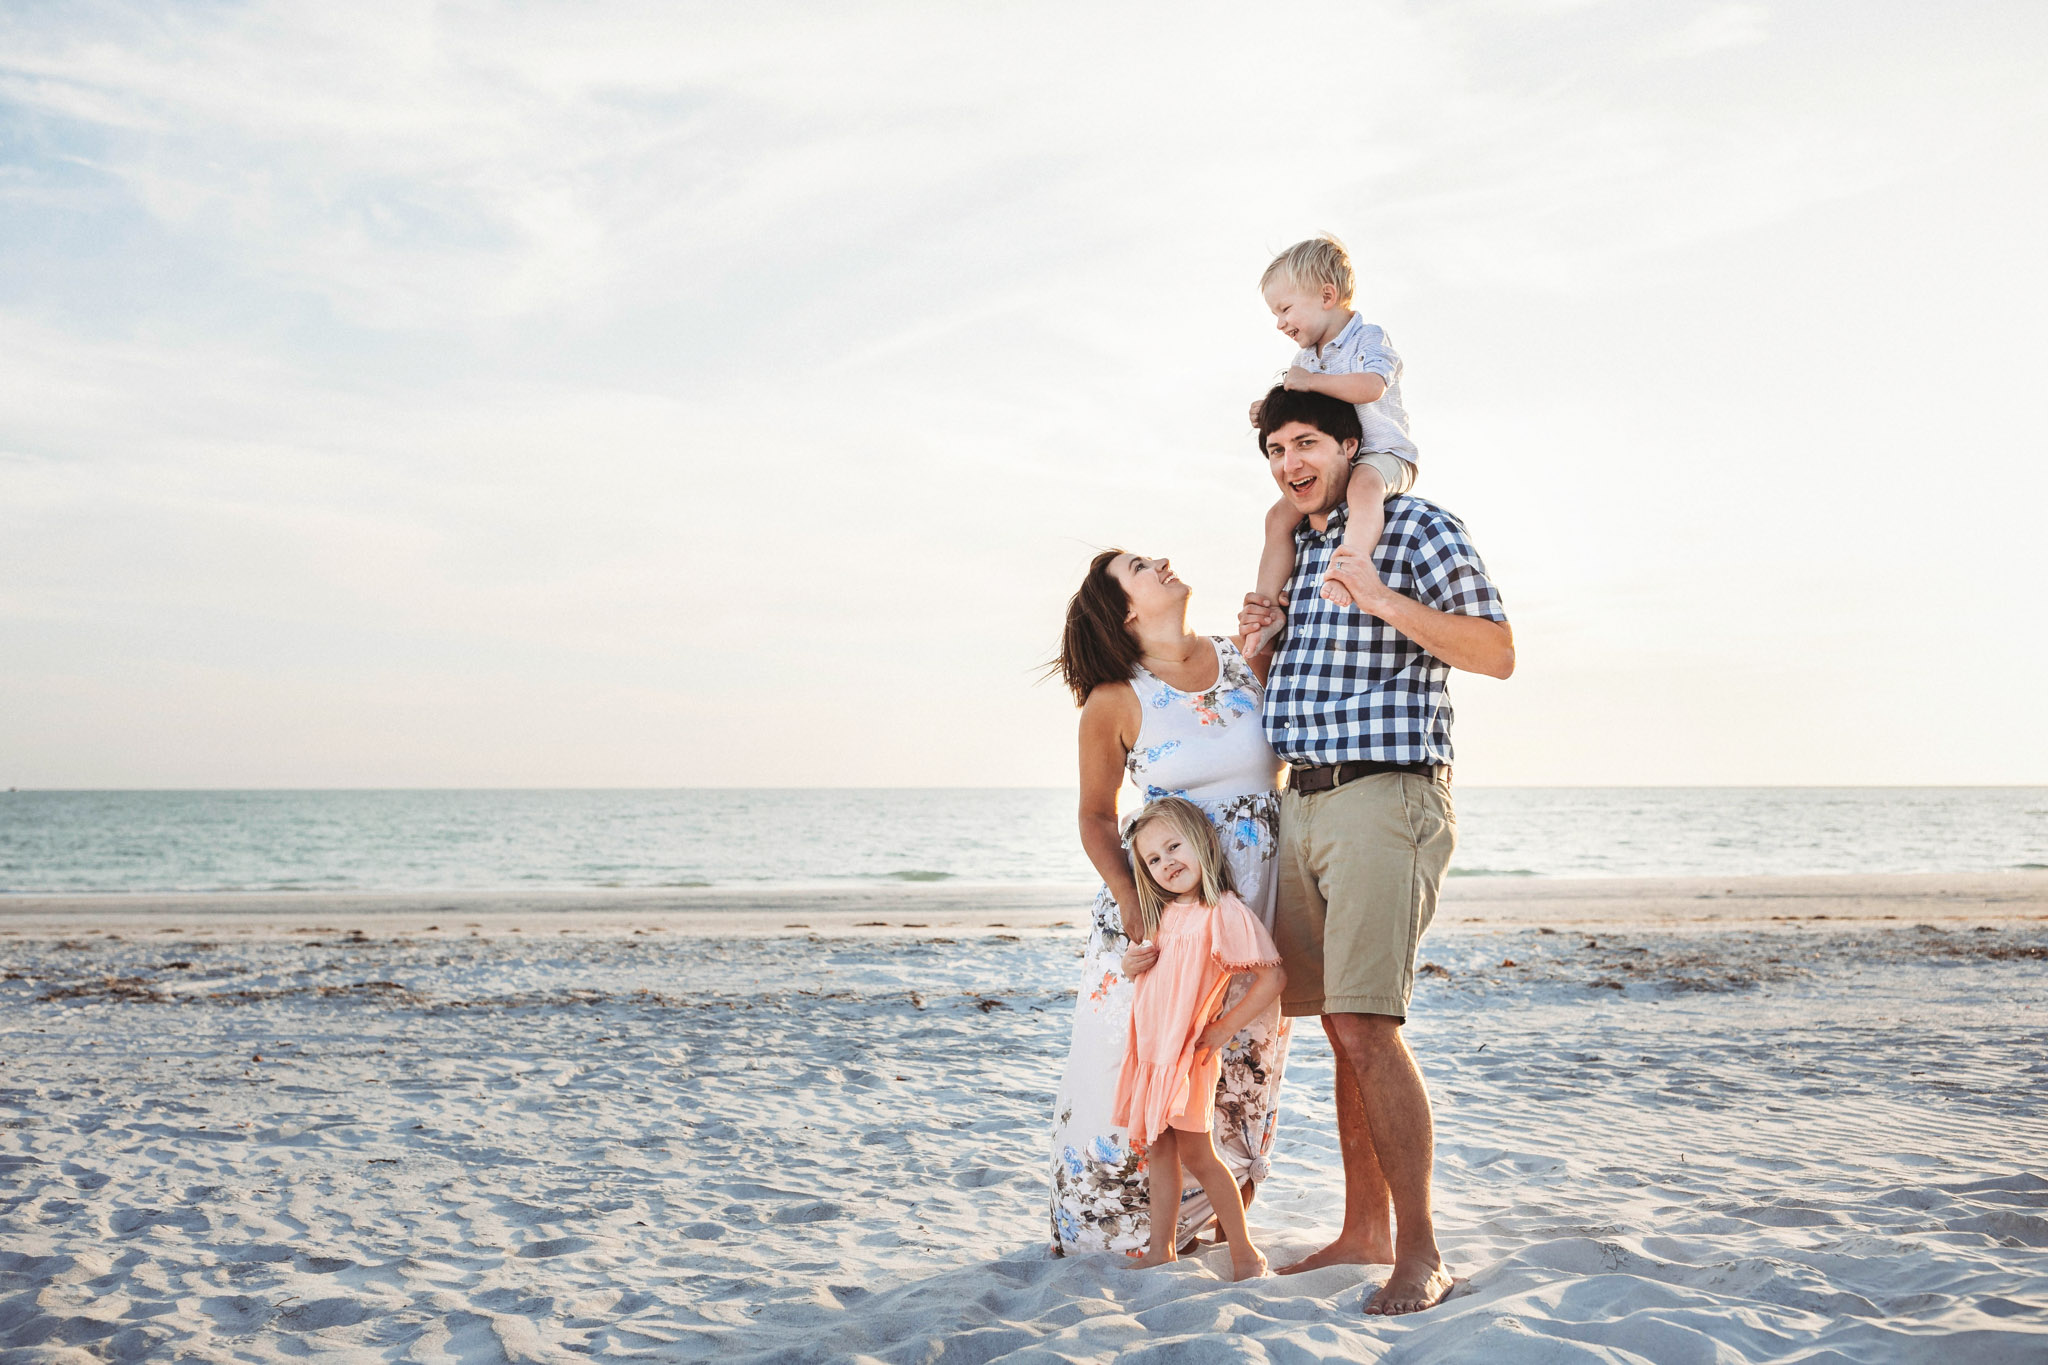 Tampa Family Photographer_Jennifer Kielich Photography_Timmerman for blog-16.jpg